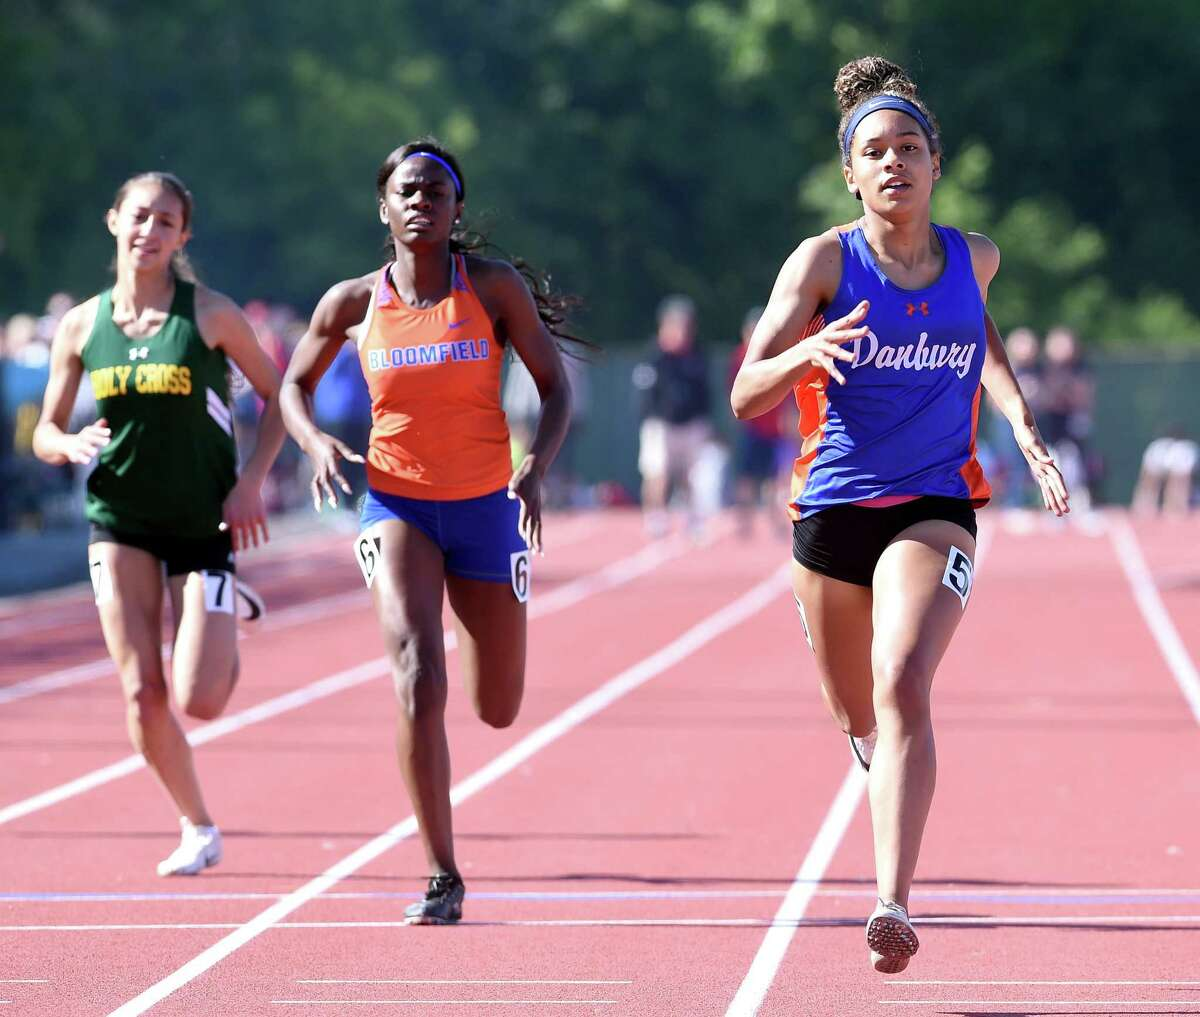 Danbury's Alanna Smith, right, wins the 400-meter dash at the State Open outdoor track championship in 2019.